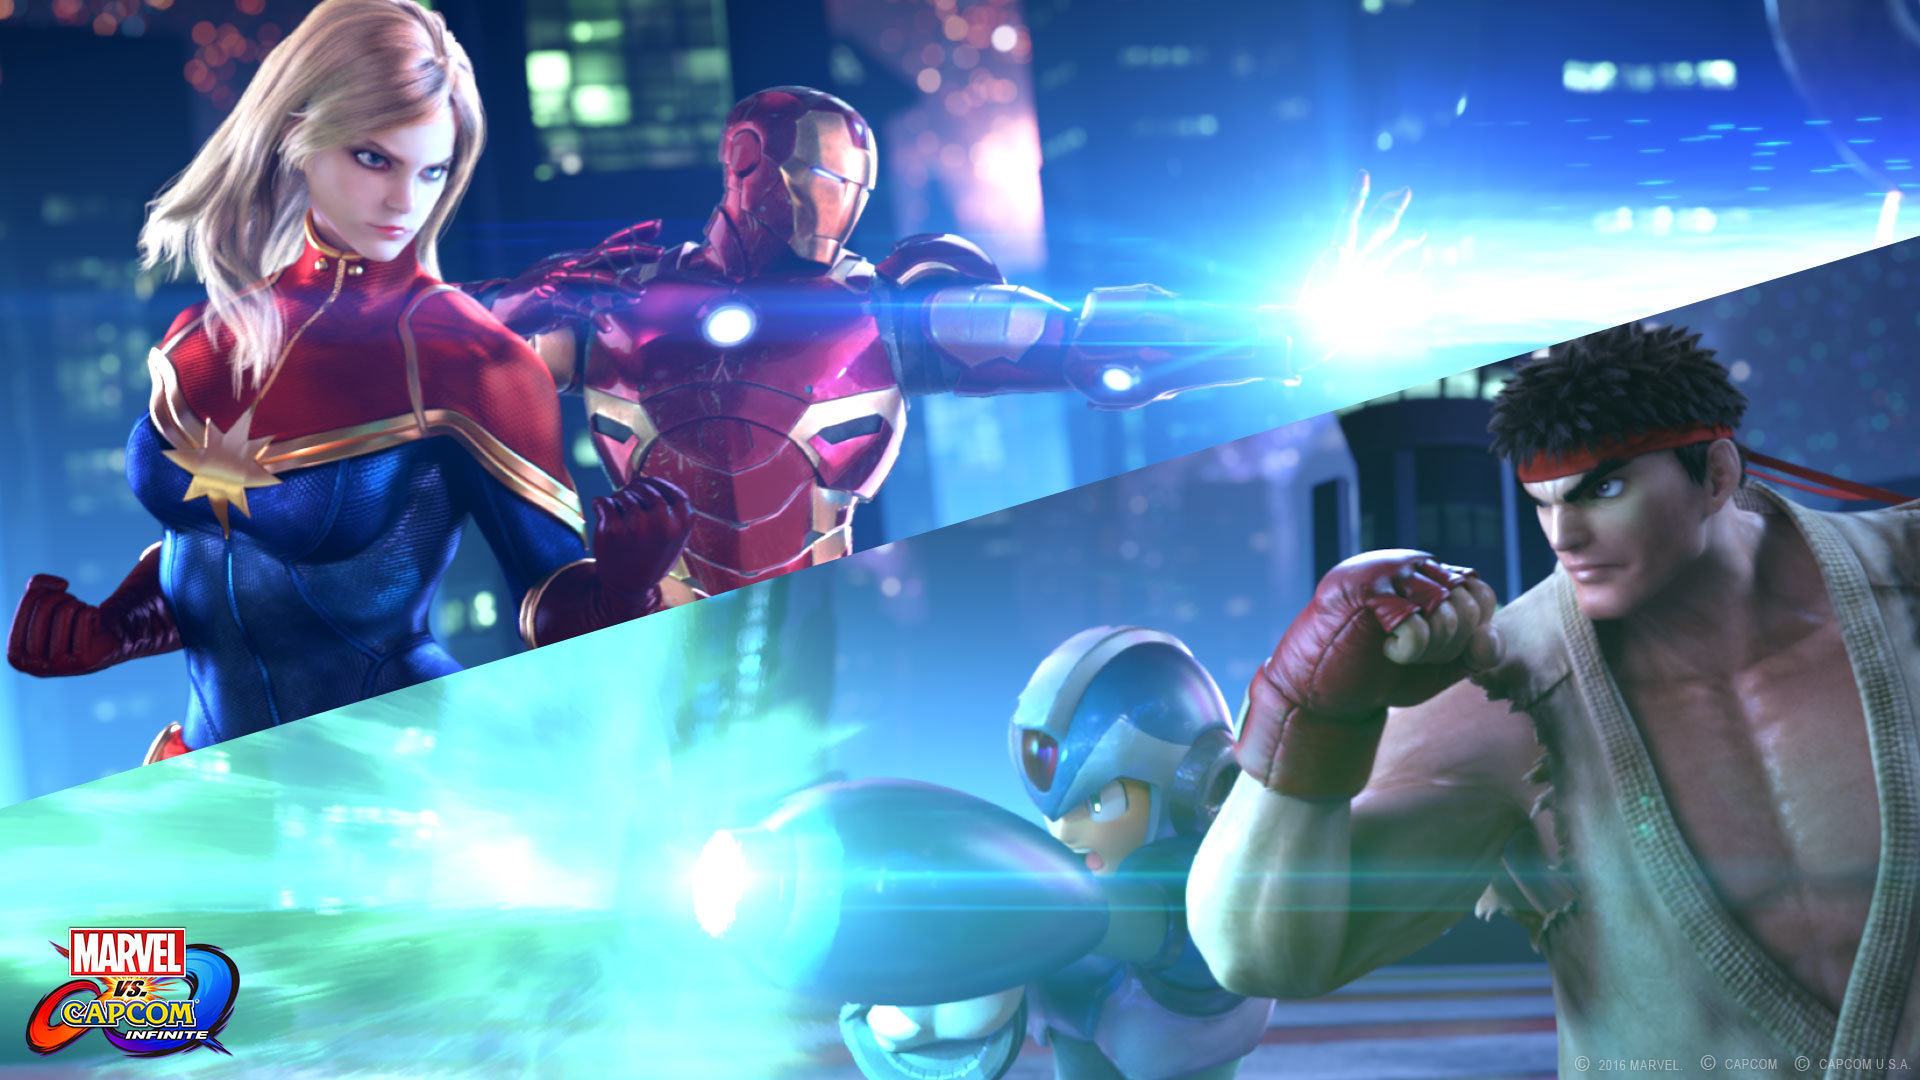 Marvel vs. Capcom: Infinite - Reveal Trailer